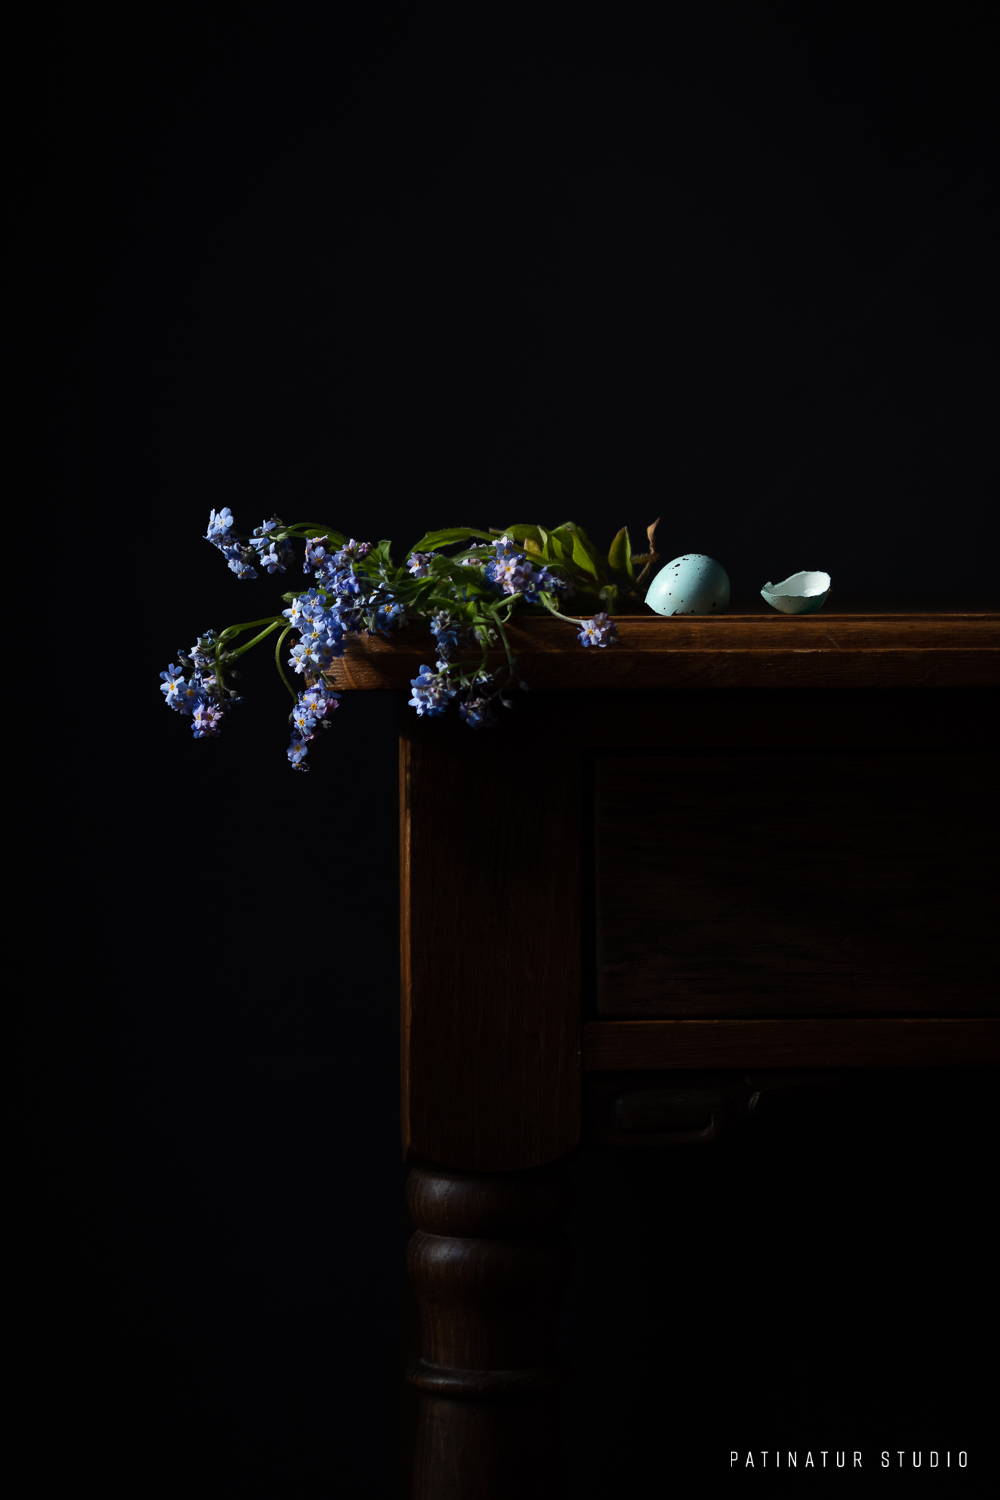 Photo art | Dark and moody still life with Forget-Me-Nots and green bird's egg shells